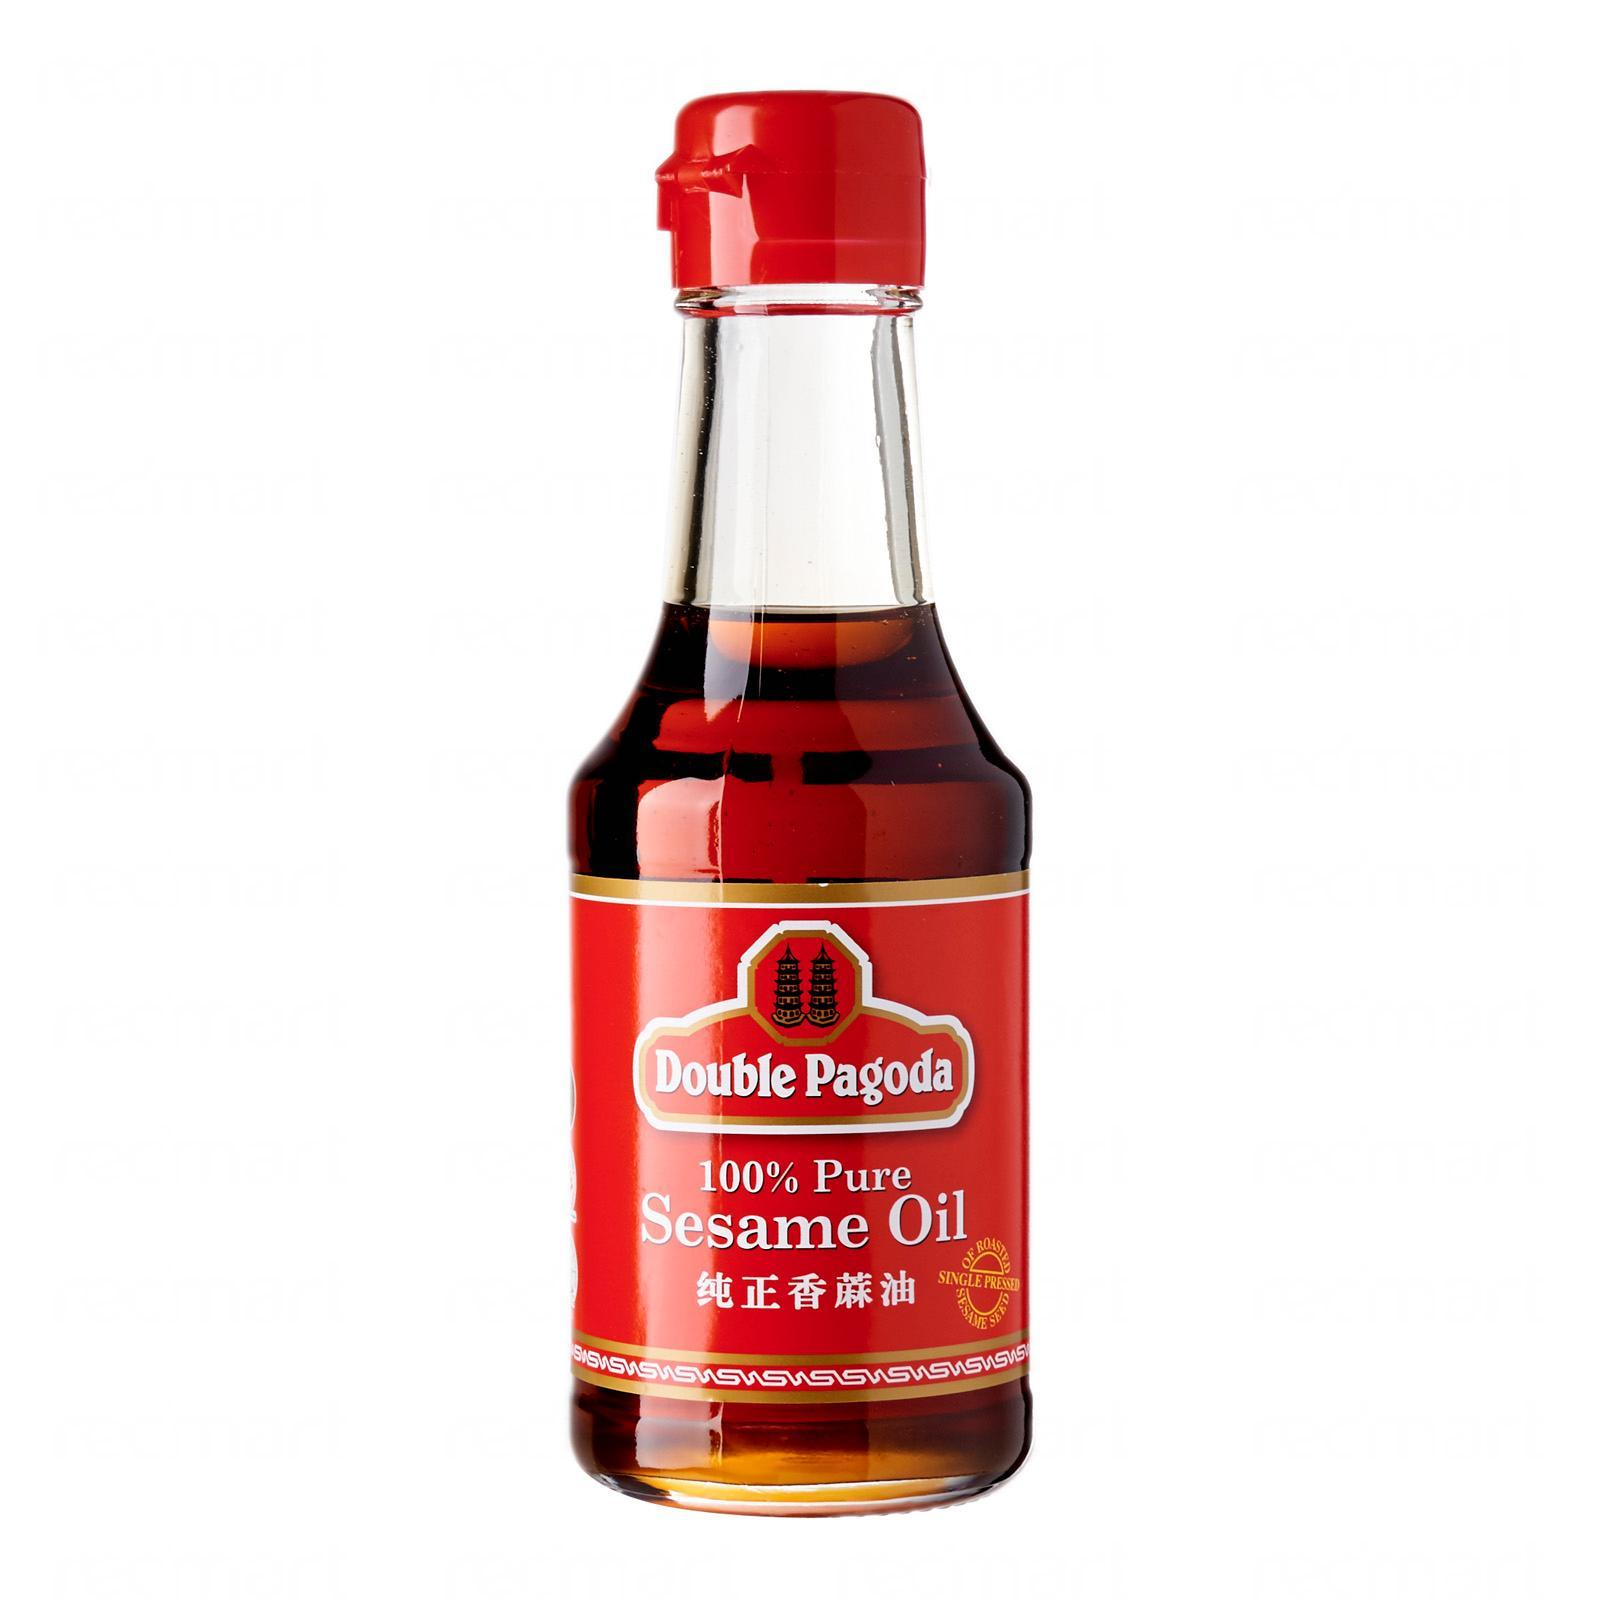 Double Pagoda 100% Pure Sesame Oil By Redmart.